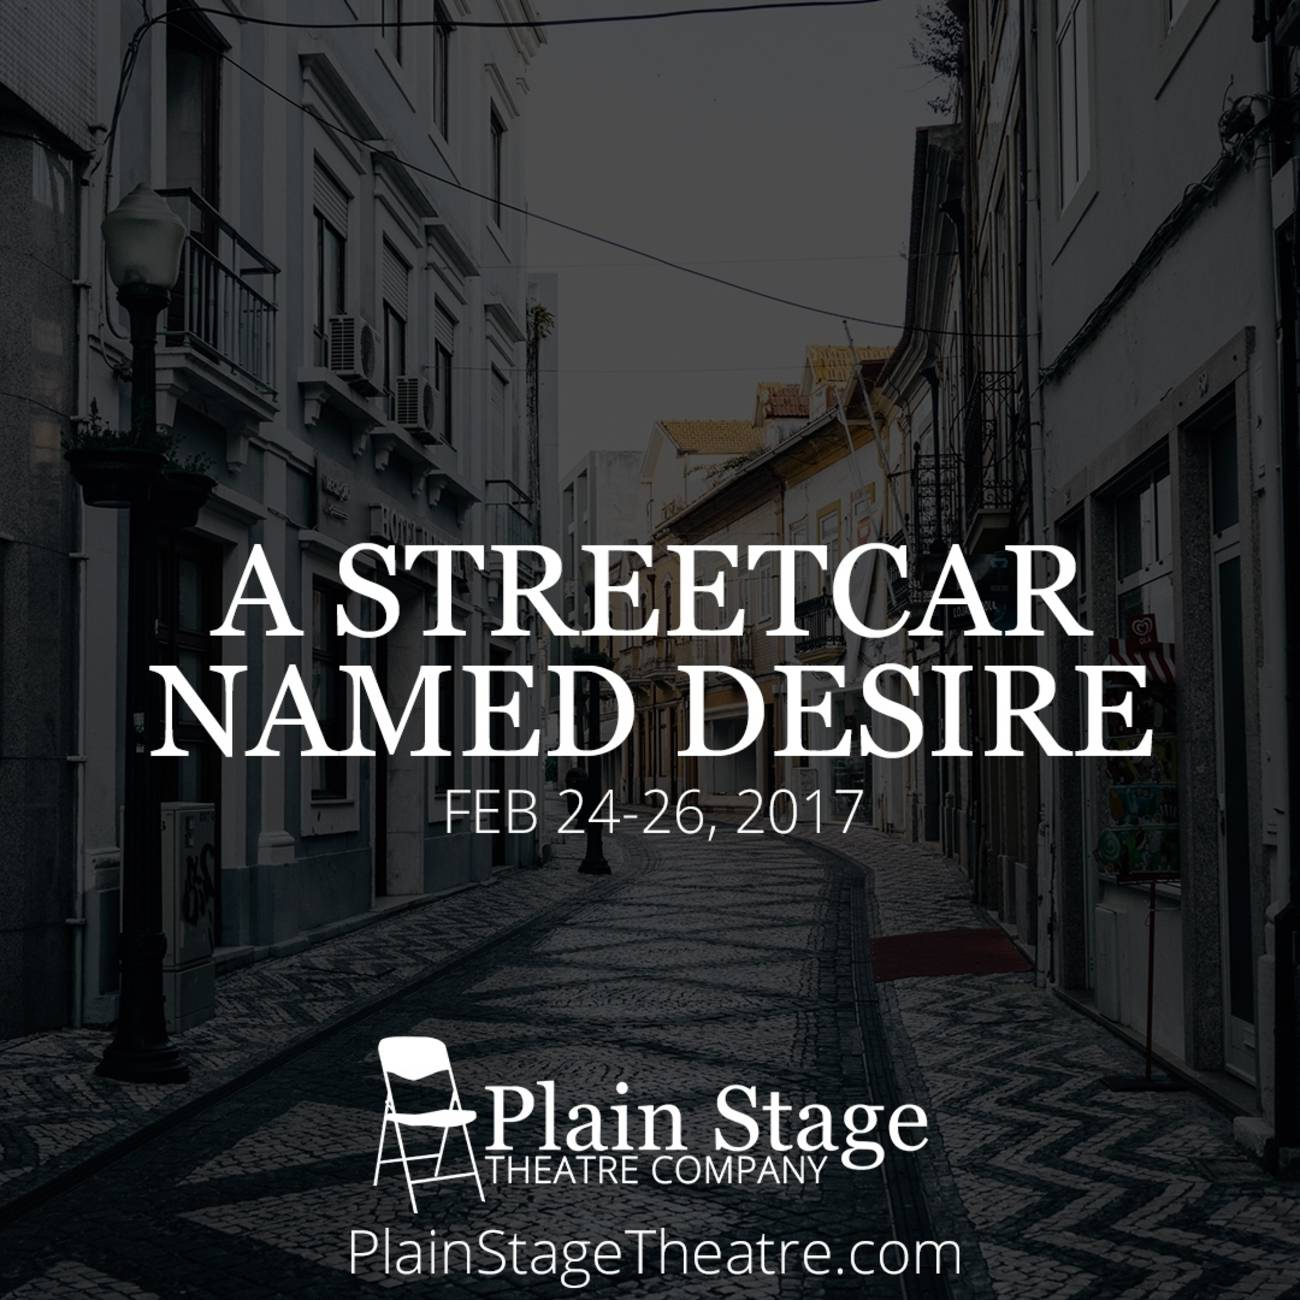 streetcar named desire reality Start studying a streetcar named desire learn vocabulary, terms, and more with flashcards, games, and other study tools.